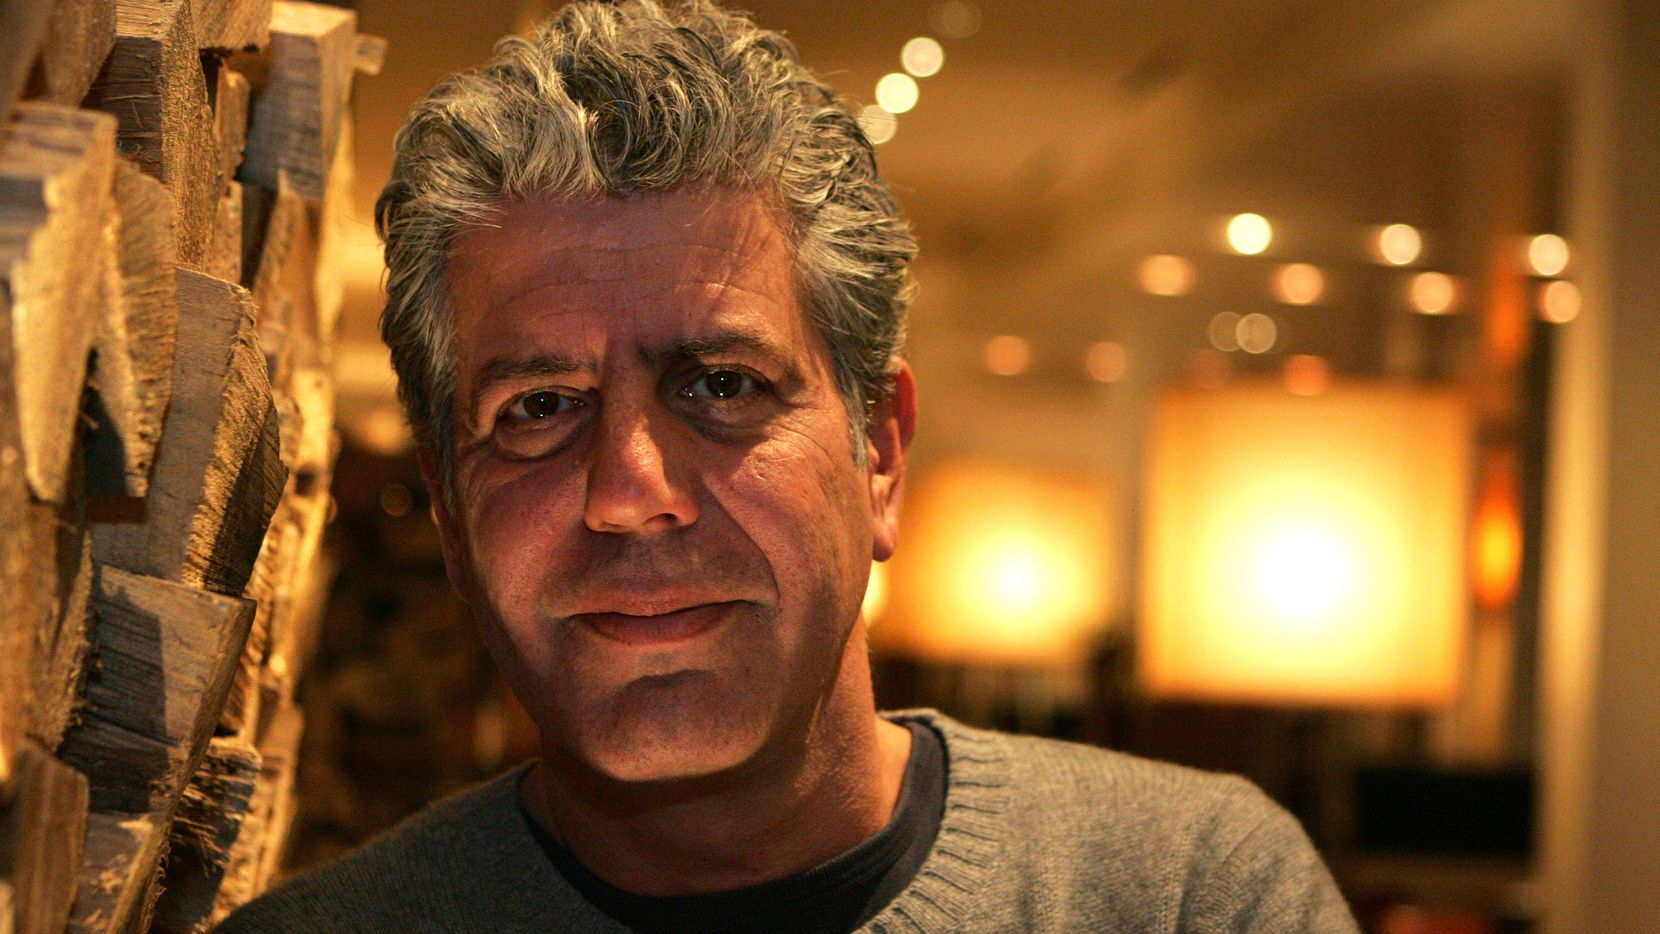 Chef Anthony Bourdain died in early 2018. Nearly two years later, more than 200 of his keepsakes are being auctioned off in Texas, New York and Georgia.